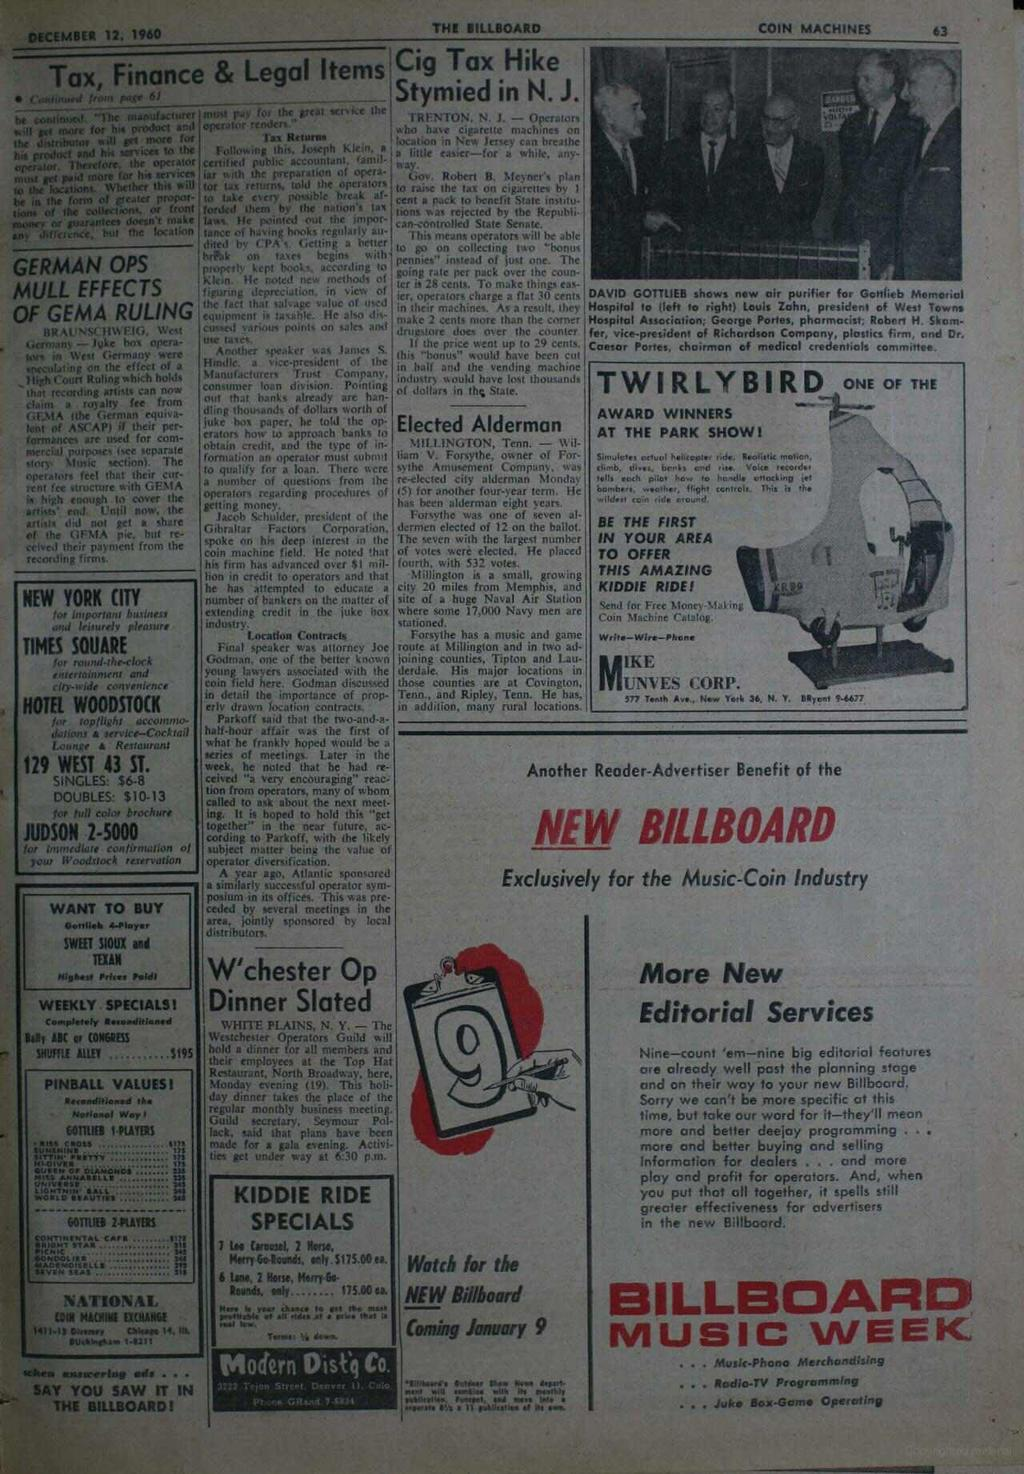 DECEMBER 12, 1960 THE BILLBOARD Tax Finance & Legal Items Cig Tax Hike 11 Continued front page 61 he continued.